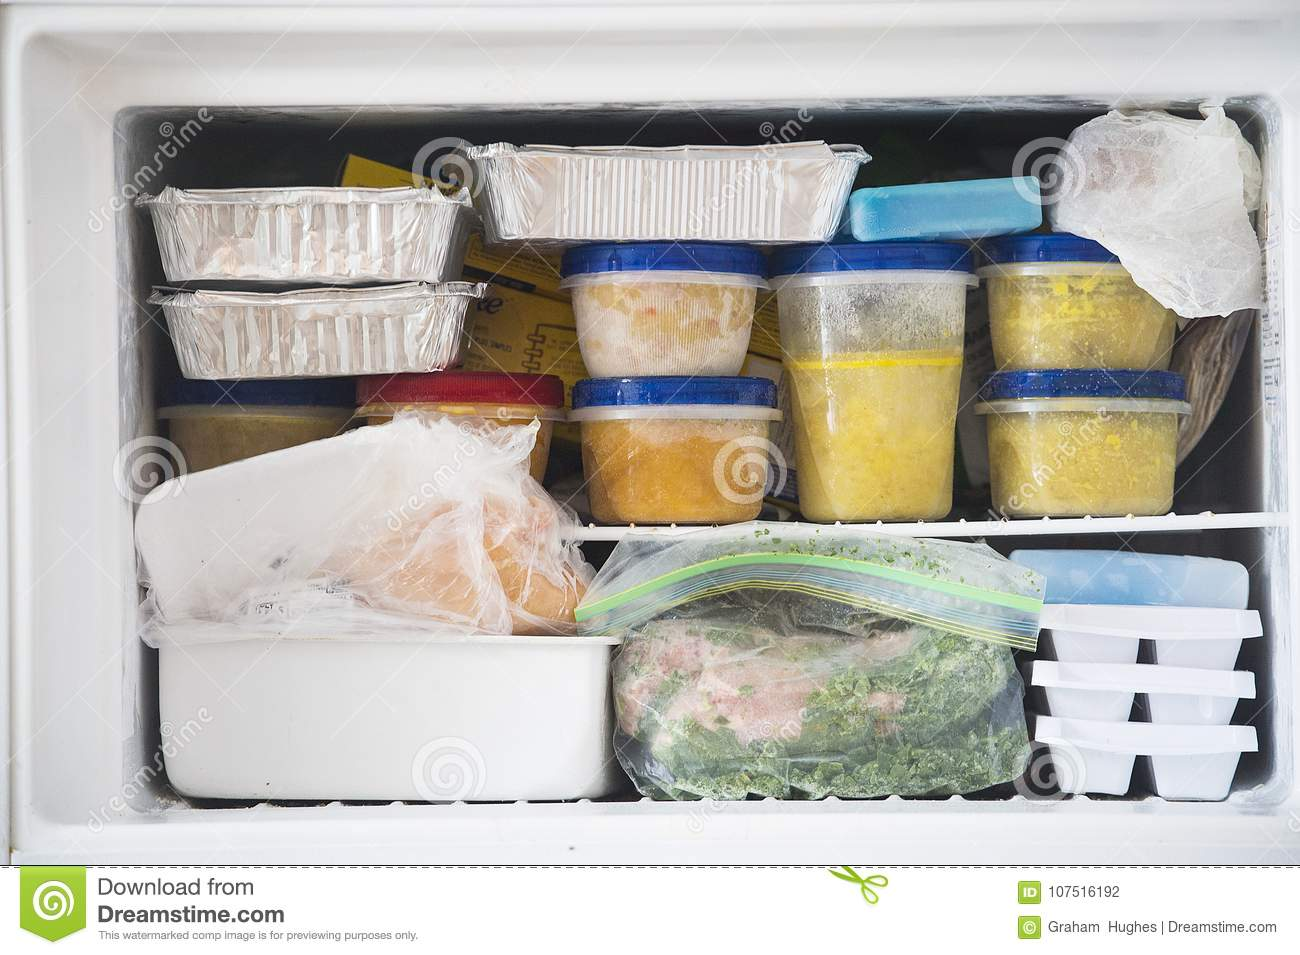 A packed freezer with soup and chicken